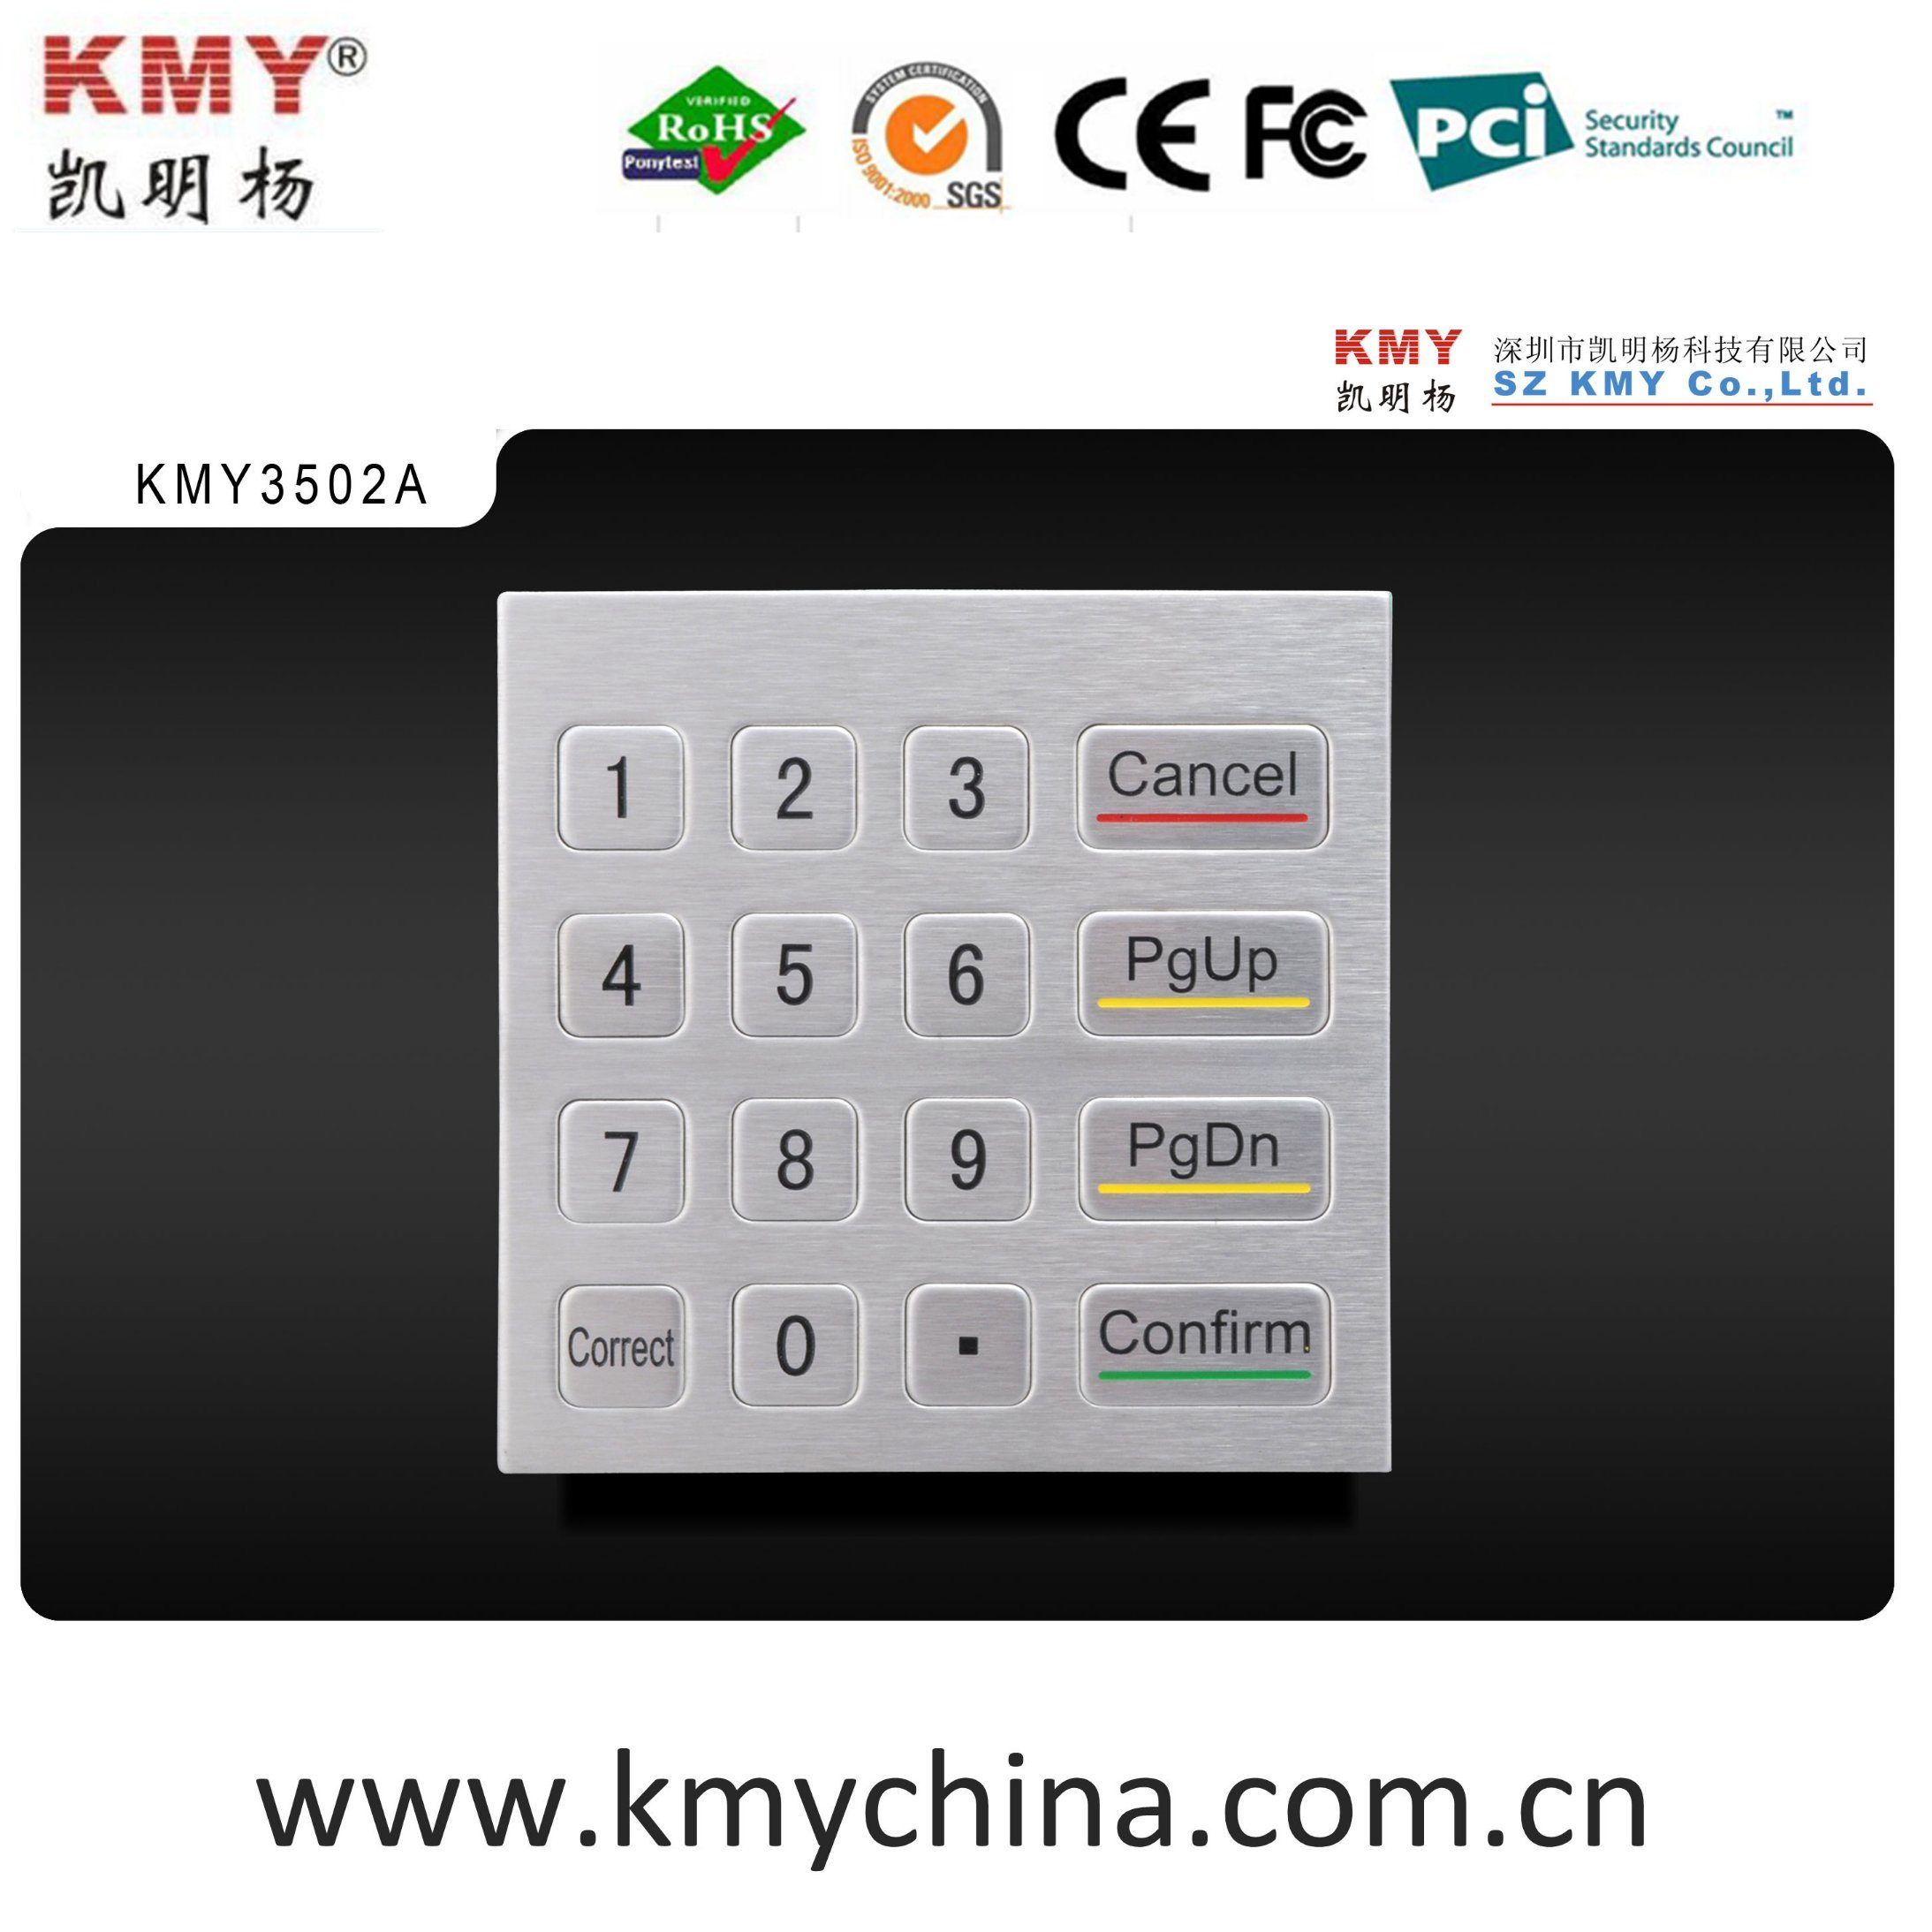 Hot Sale IP65 Metal Keypad Plug and Play (KMY3502A)